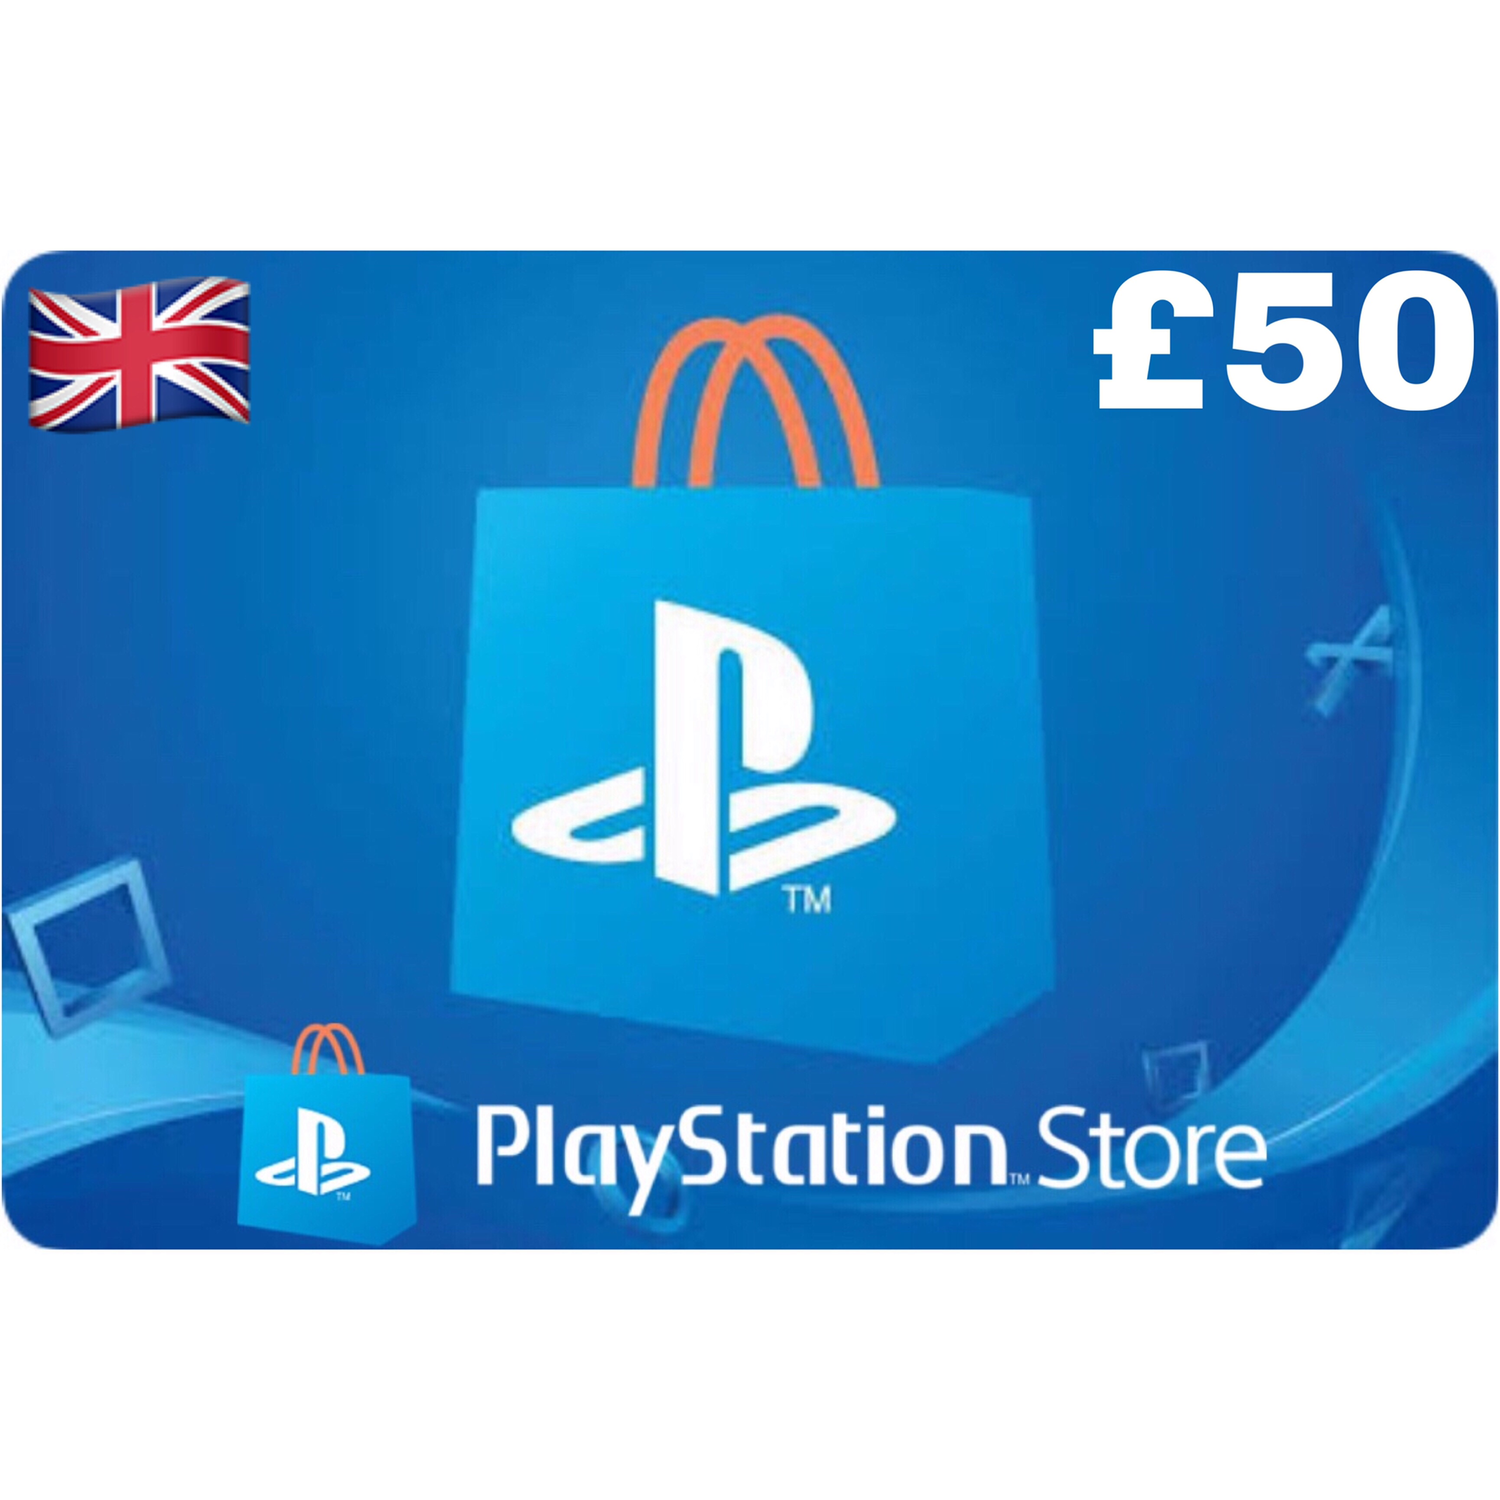 Playstation (PSN Card) UK £50